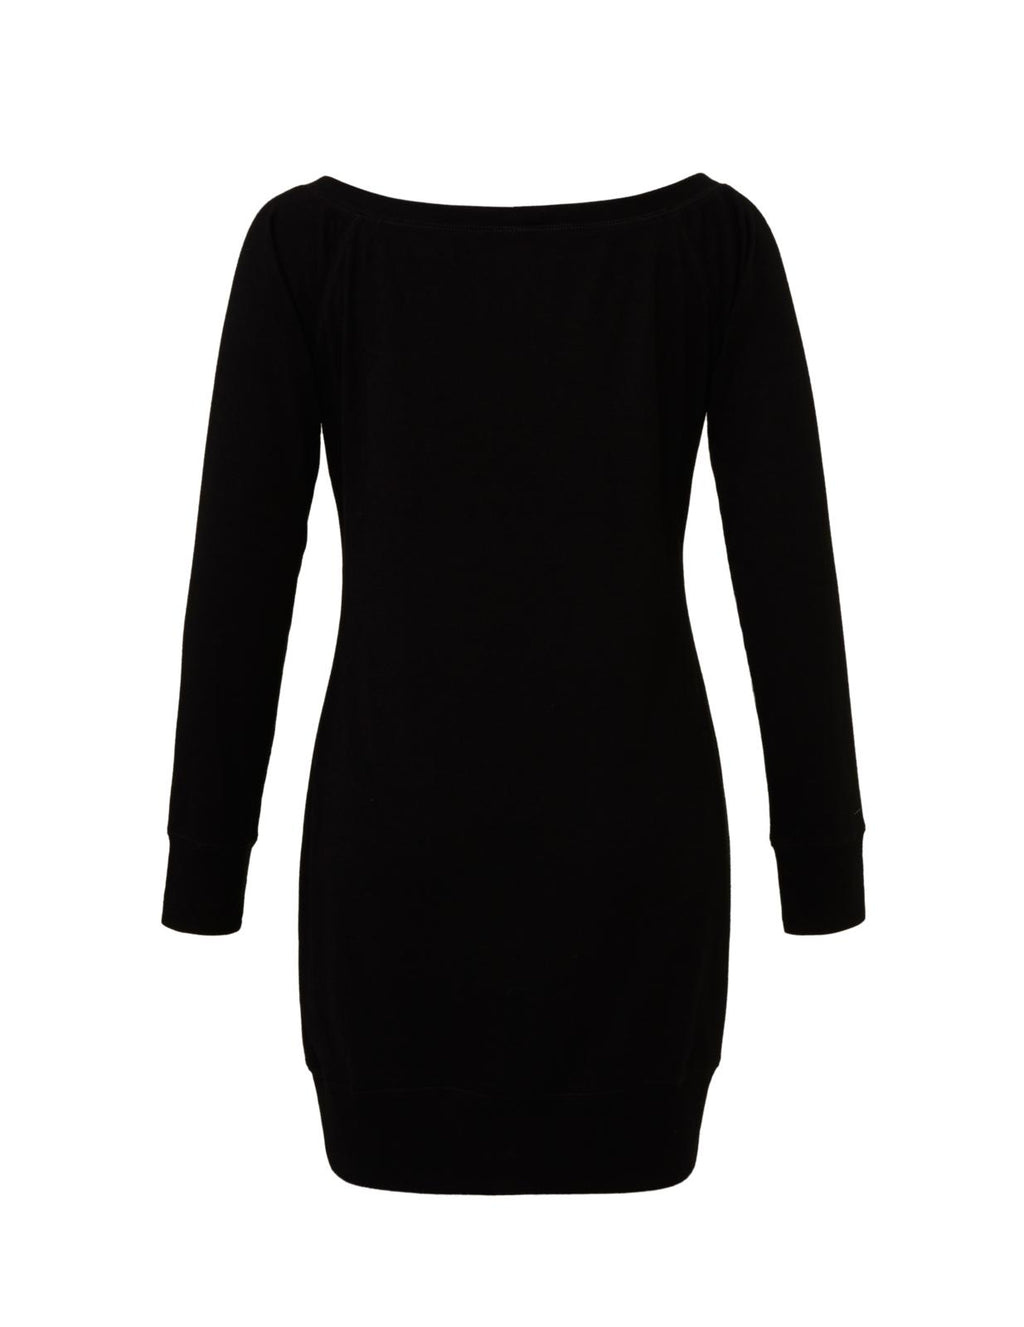 Black Lightweight Sweater Dress with white love will save graphic for 55.00 at ARMY PINK